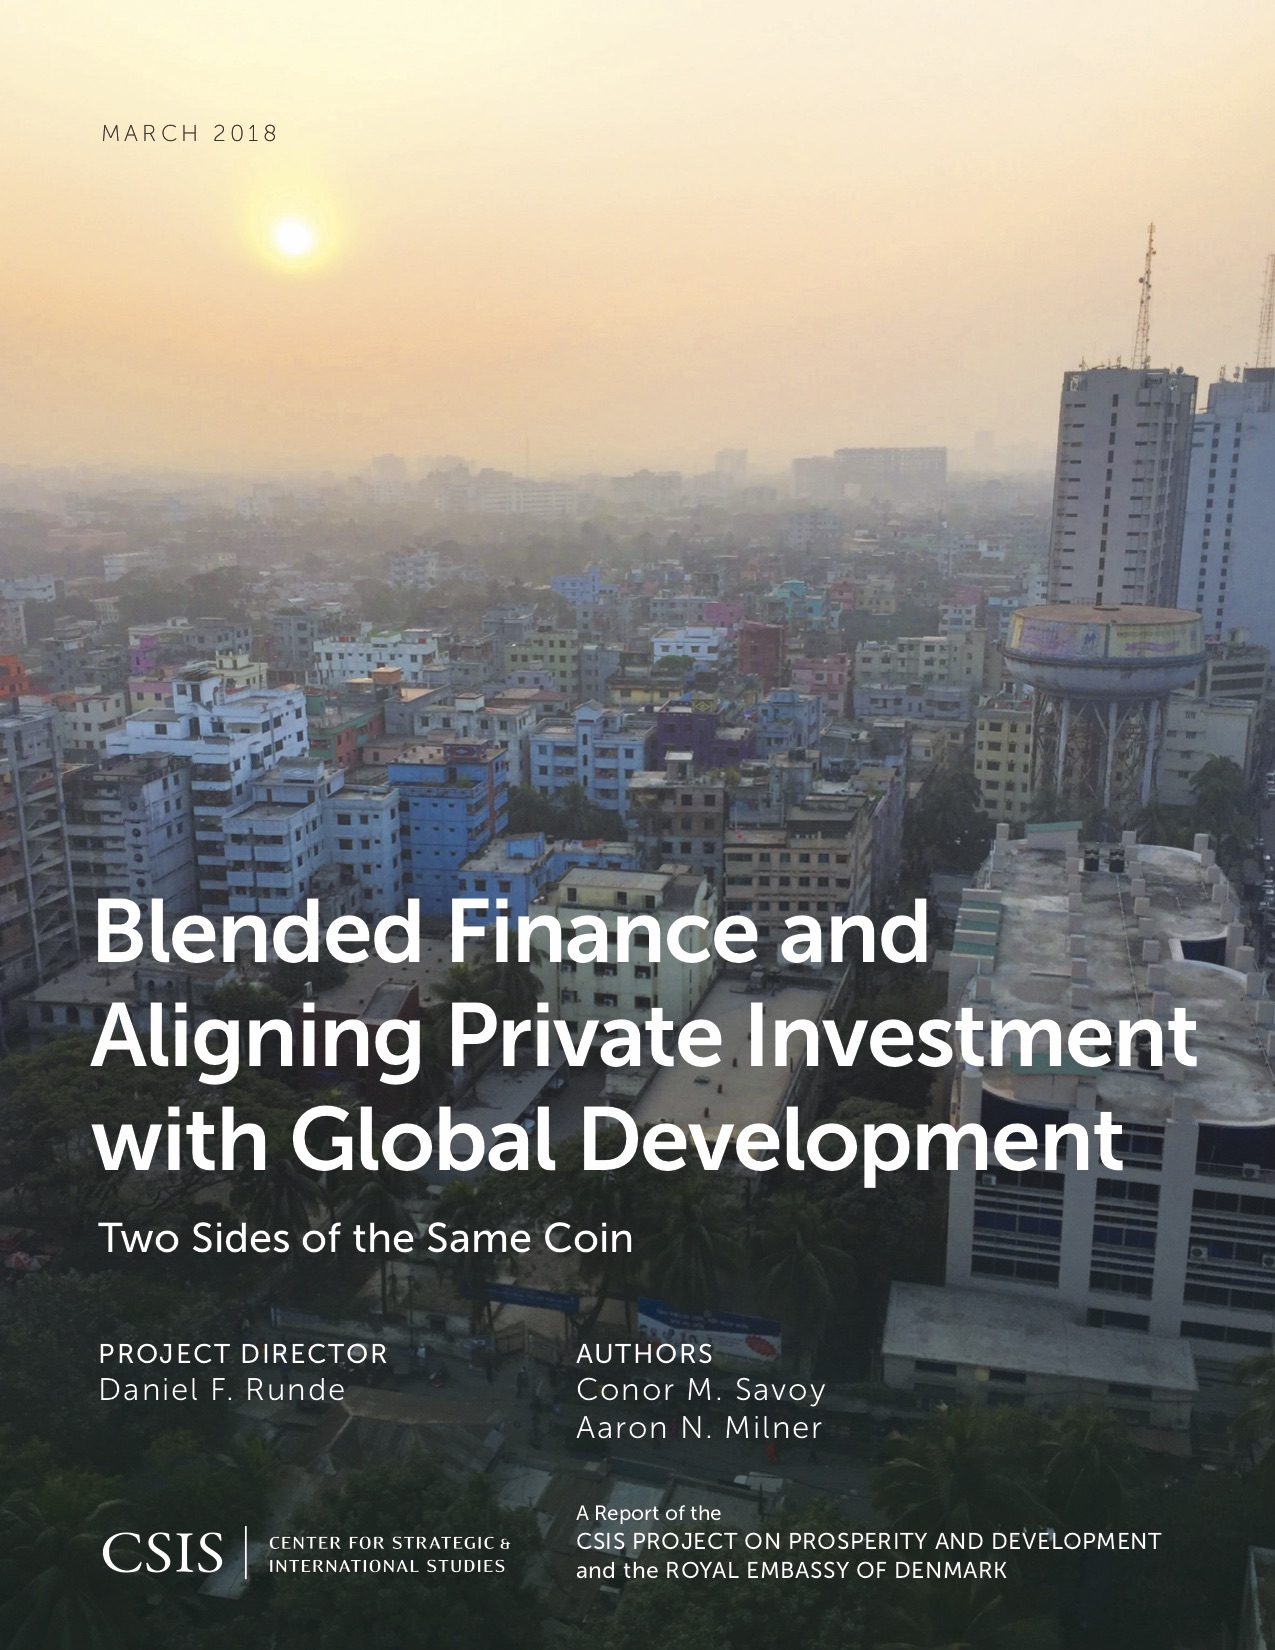 Blended Finance and Aligning Private Investment with Global Development: Two Sides of the Same Coin